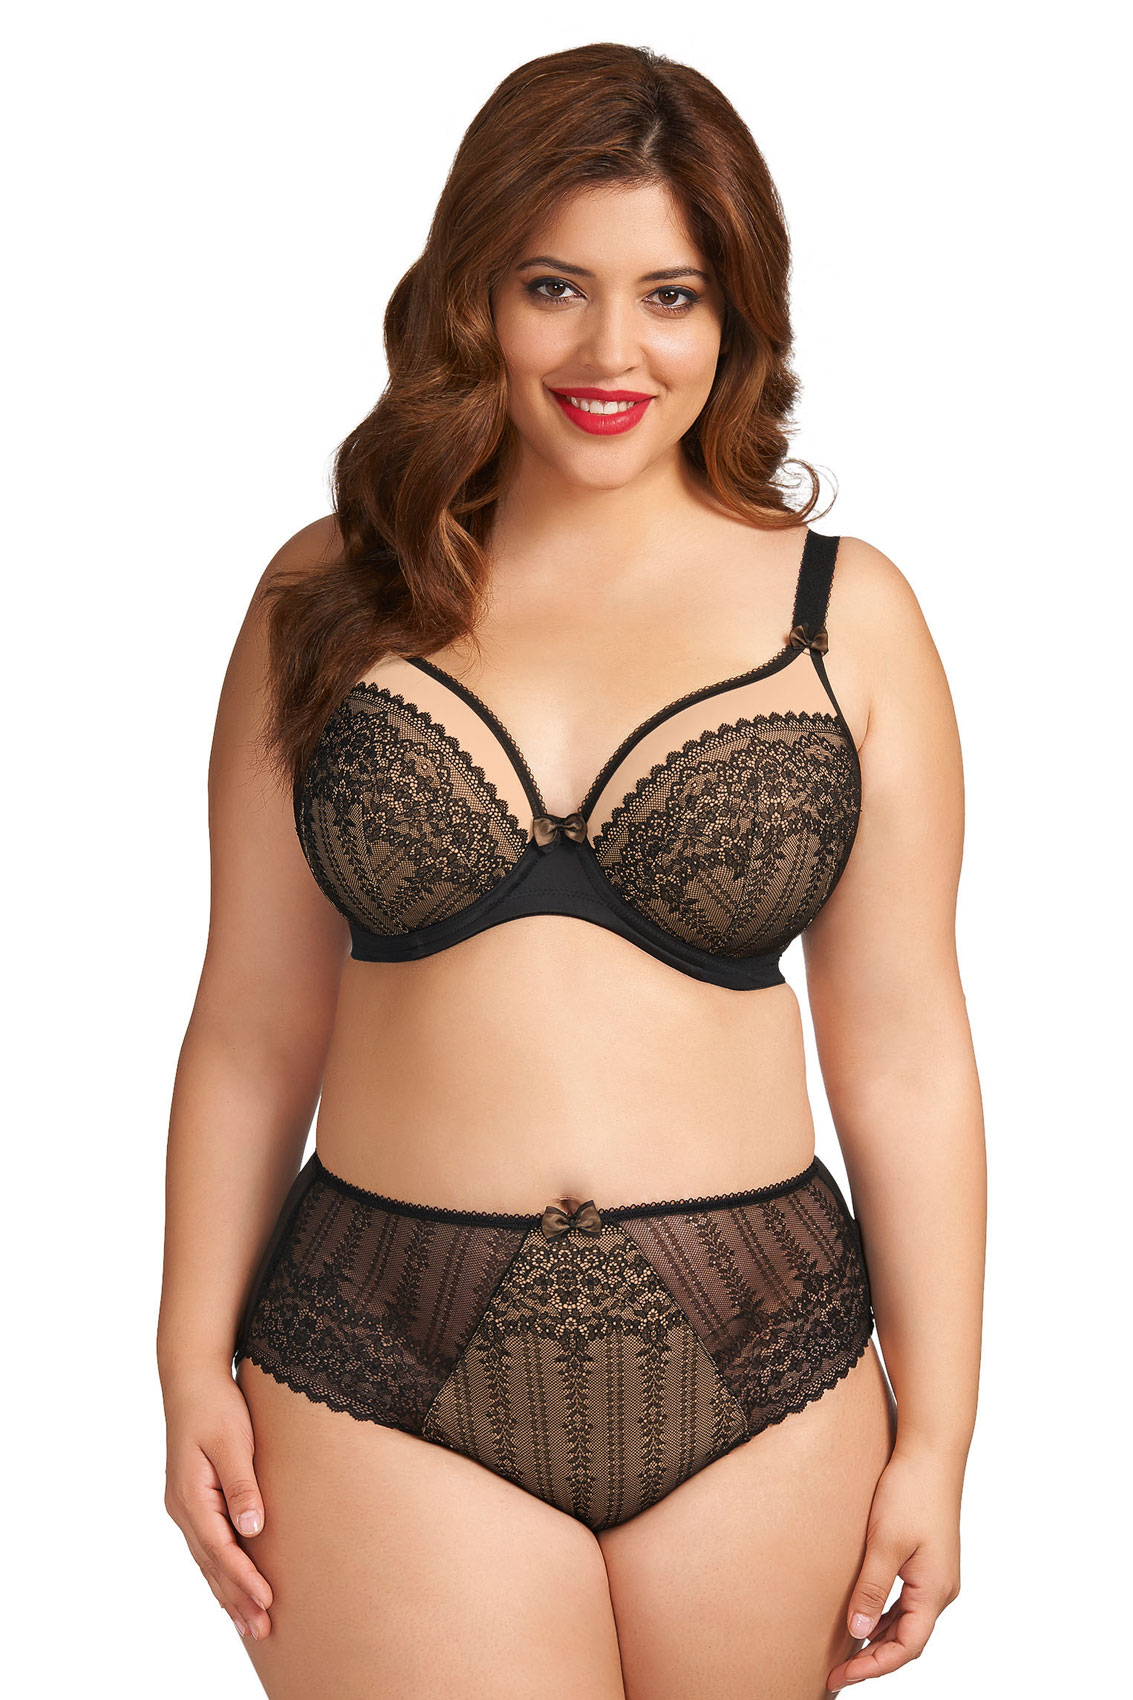 how to become a plus size bra model